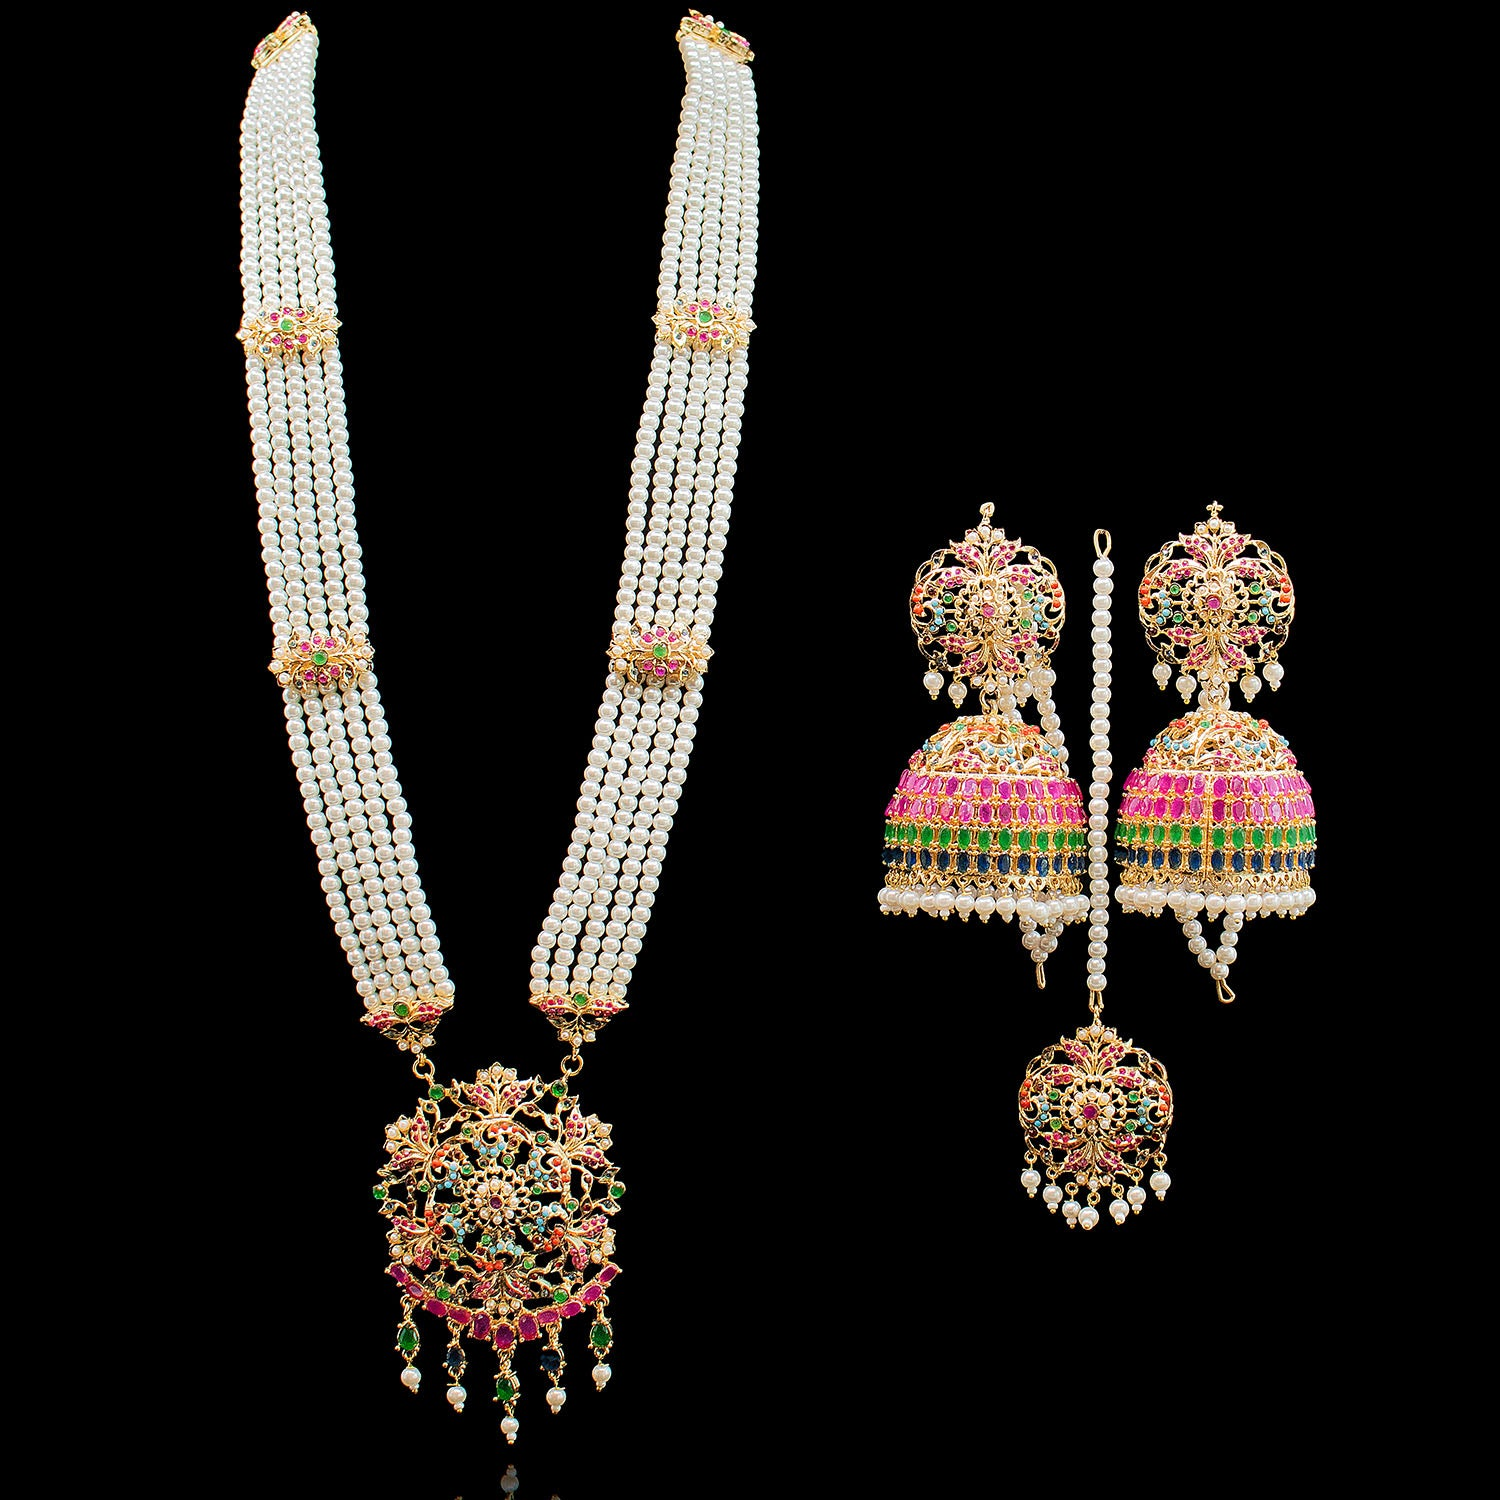 Zehna Set - Available in 2 Options